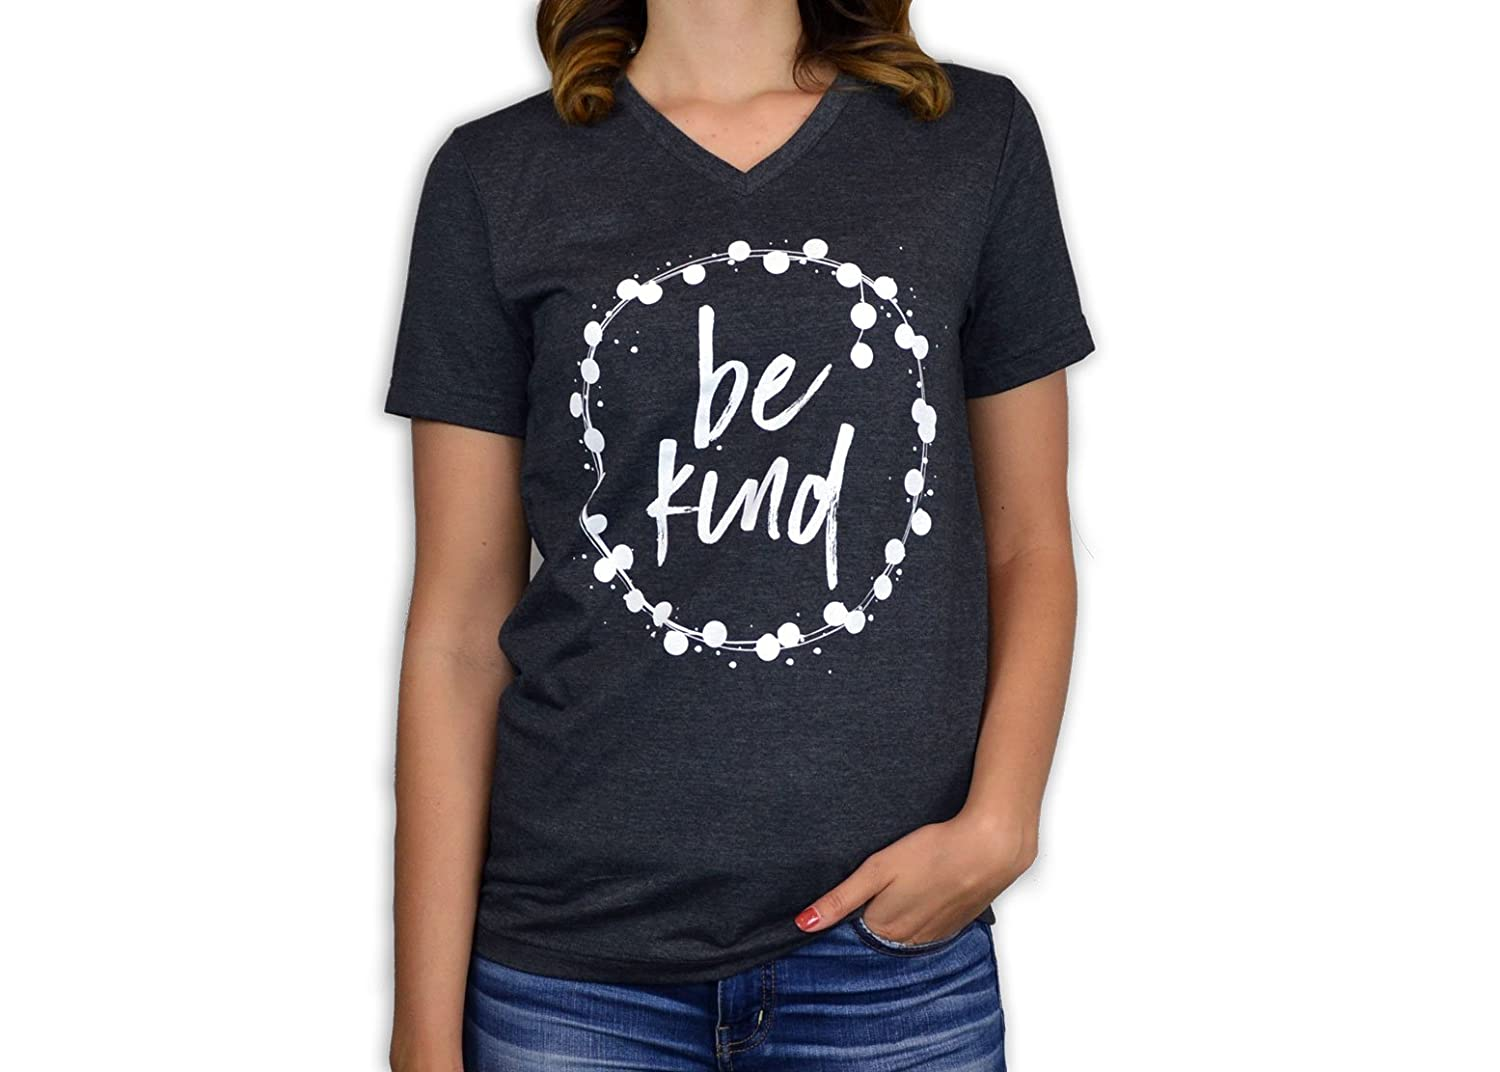 efd907c0 Bourne Southern Be Kind Women's Graphic Printed Fashion T-Shirt ...